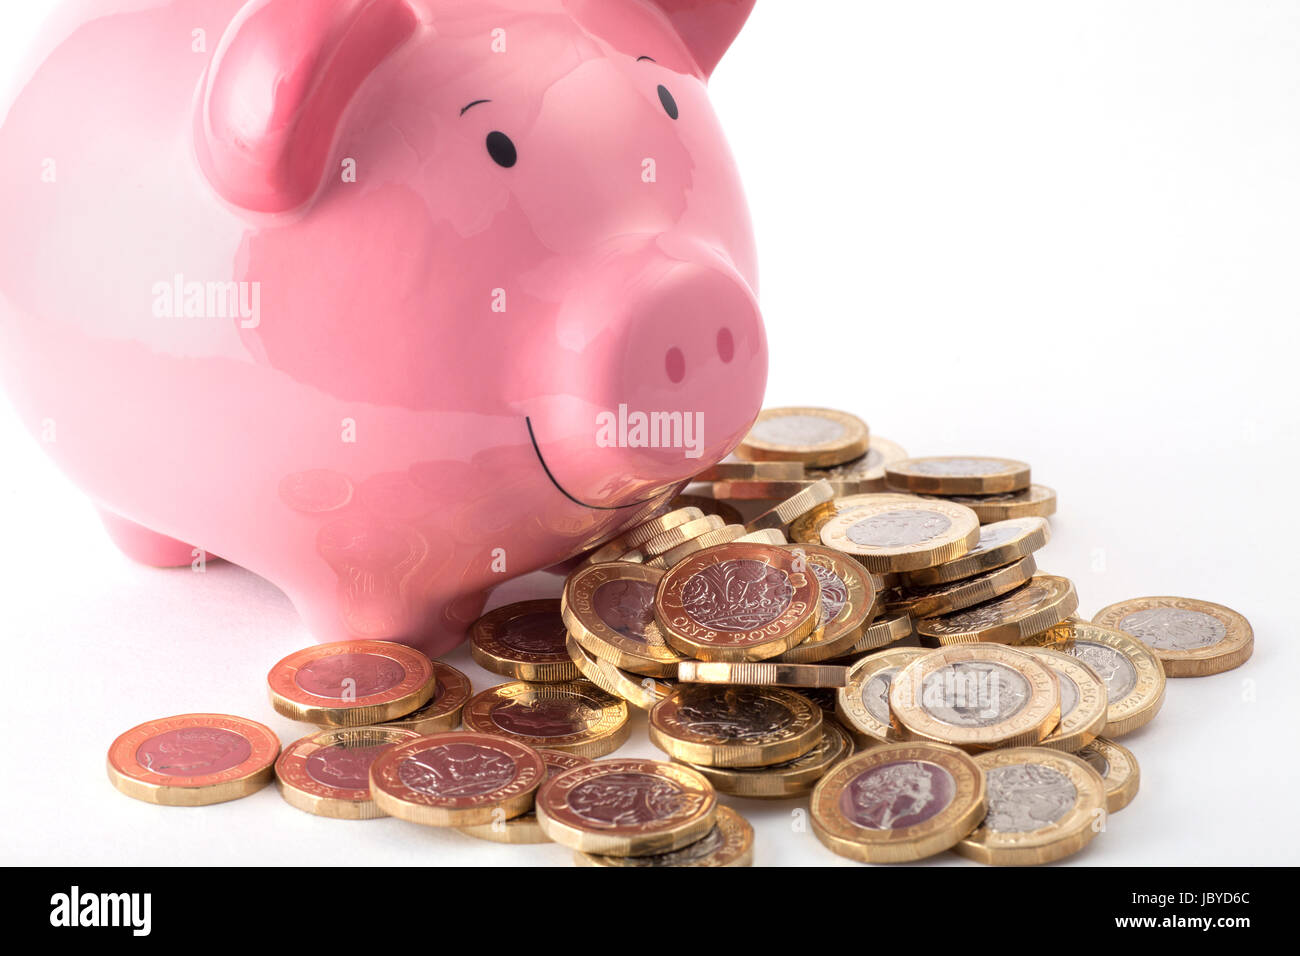 Piggy bank with a pile of new pound coins - Stock Image